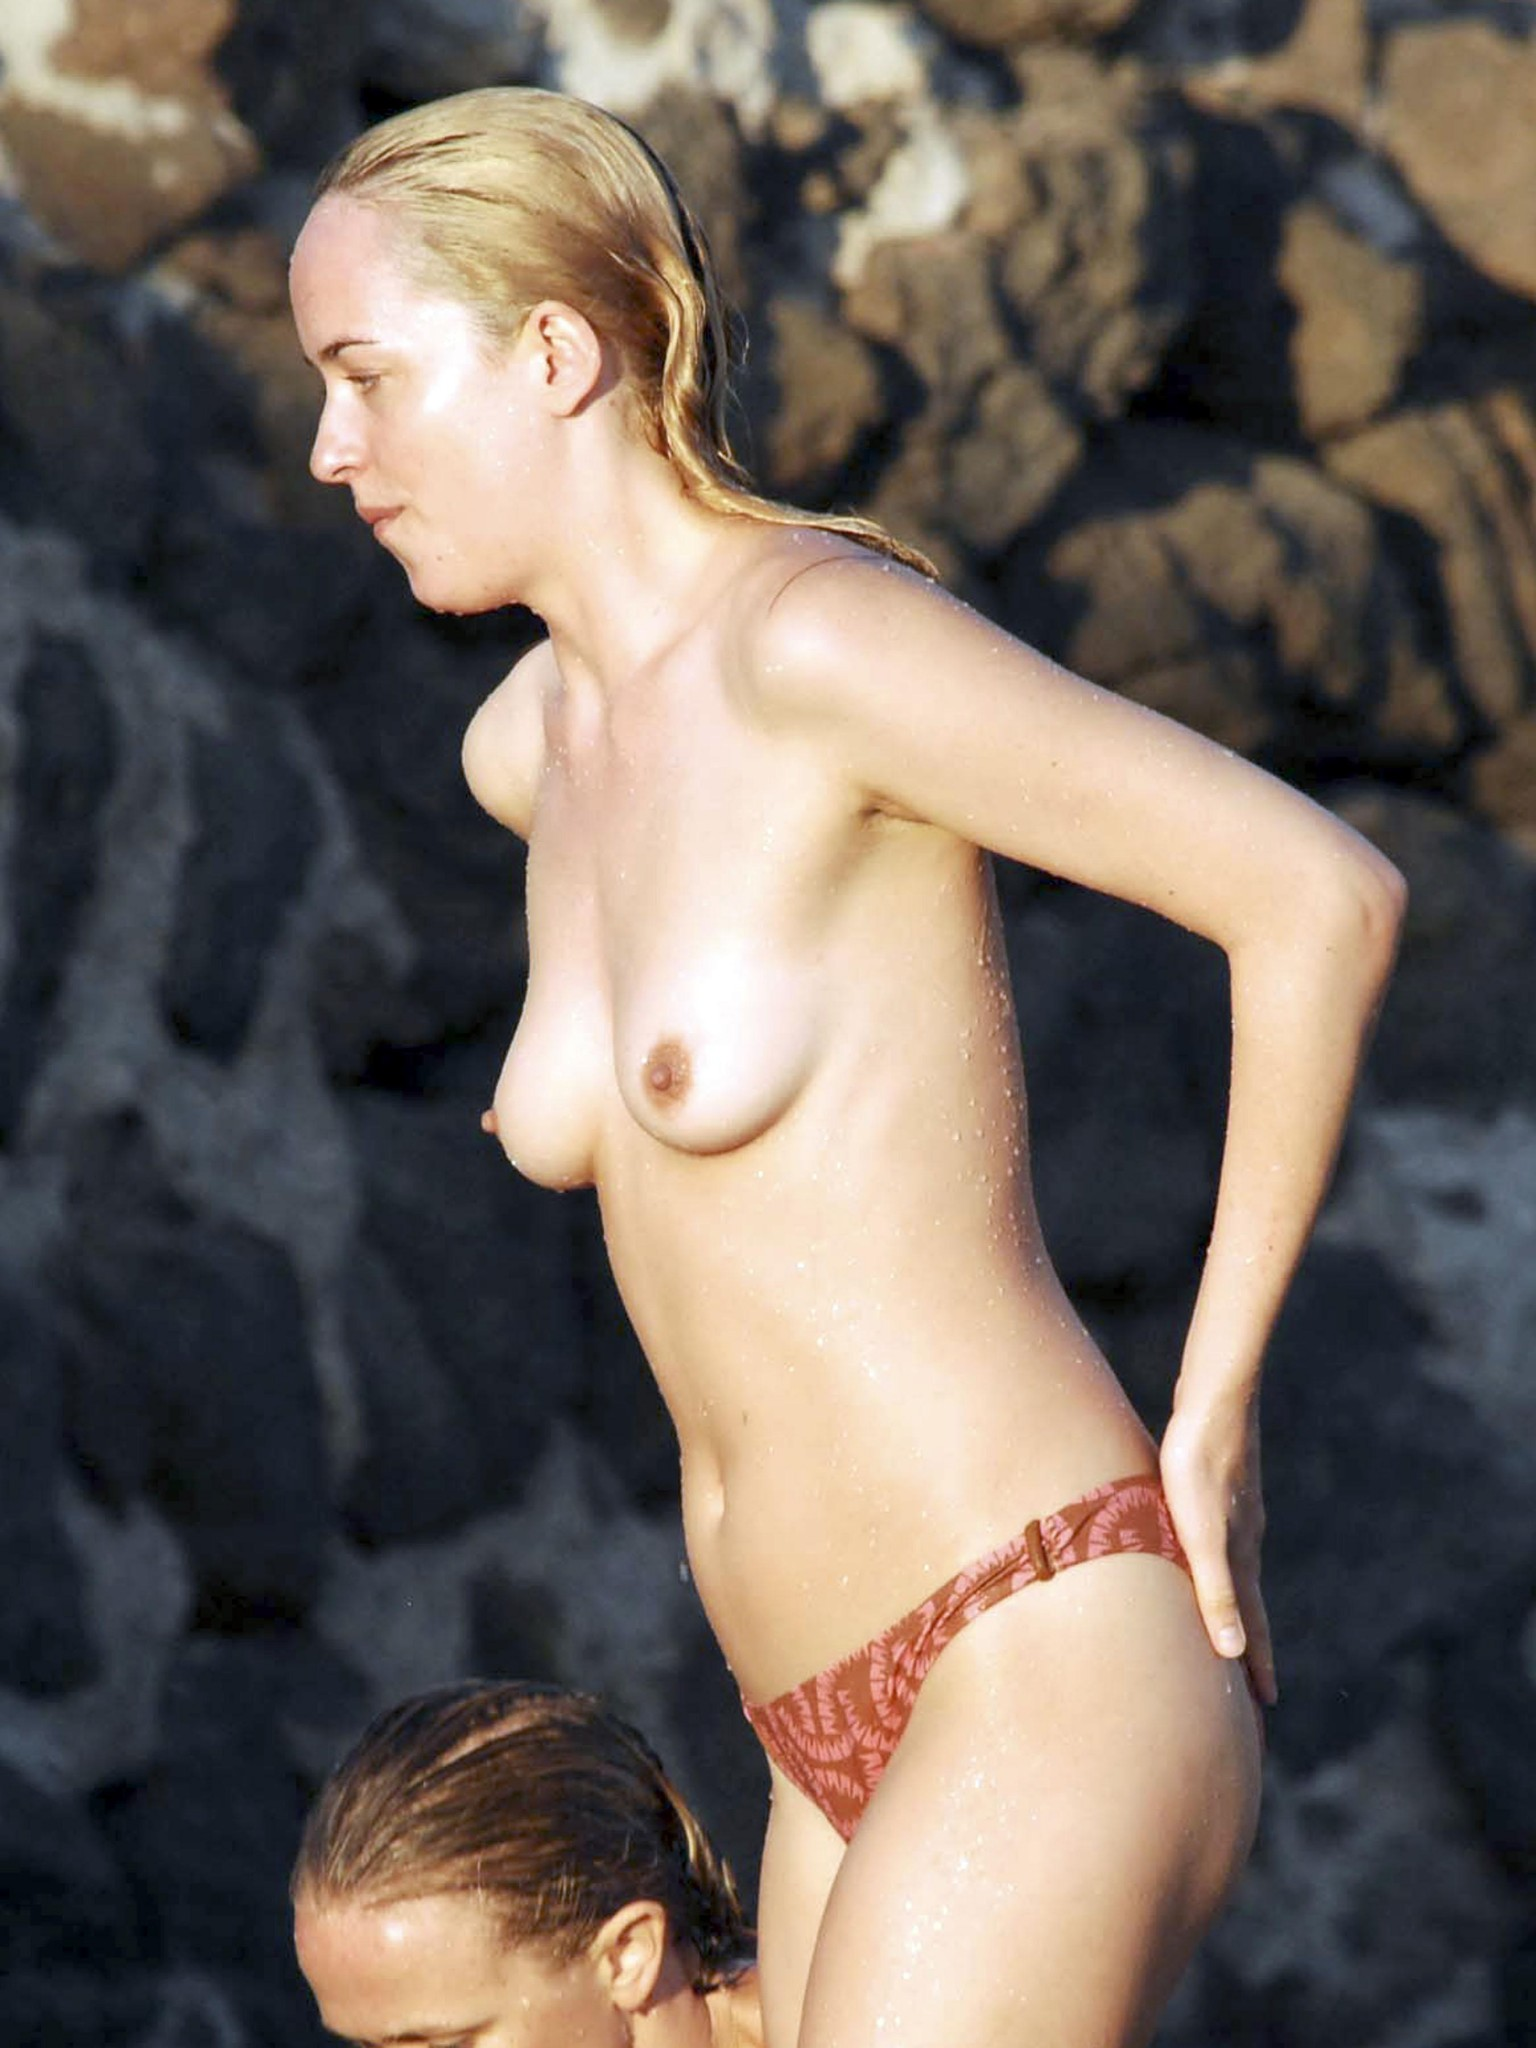 dakota-johnson-topless-in-italy-12.jpg